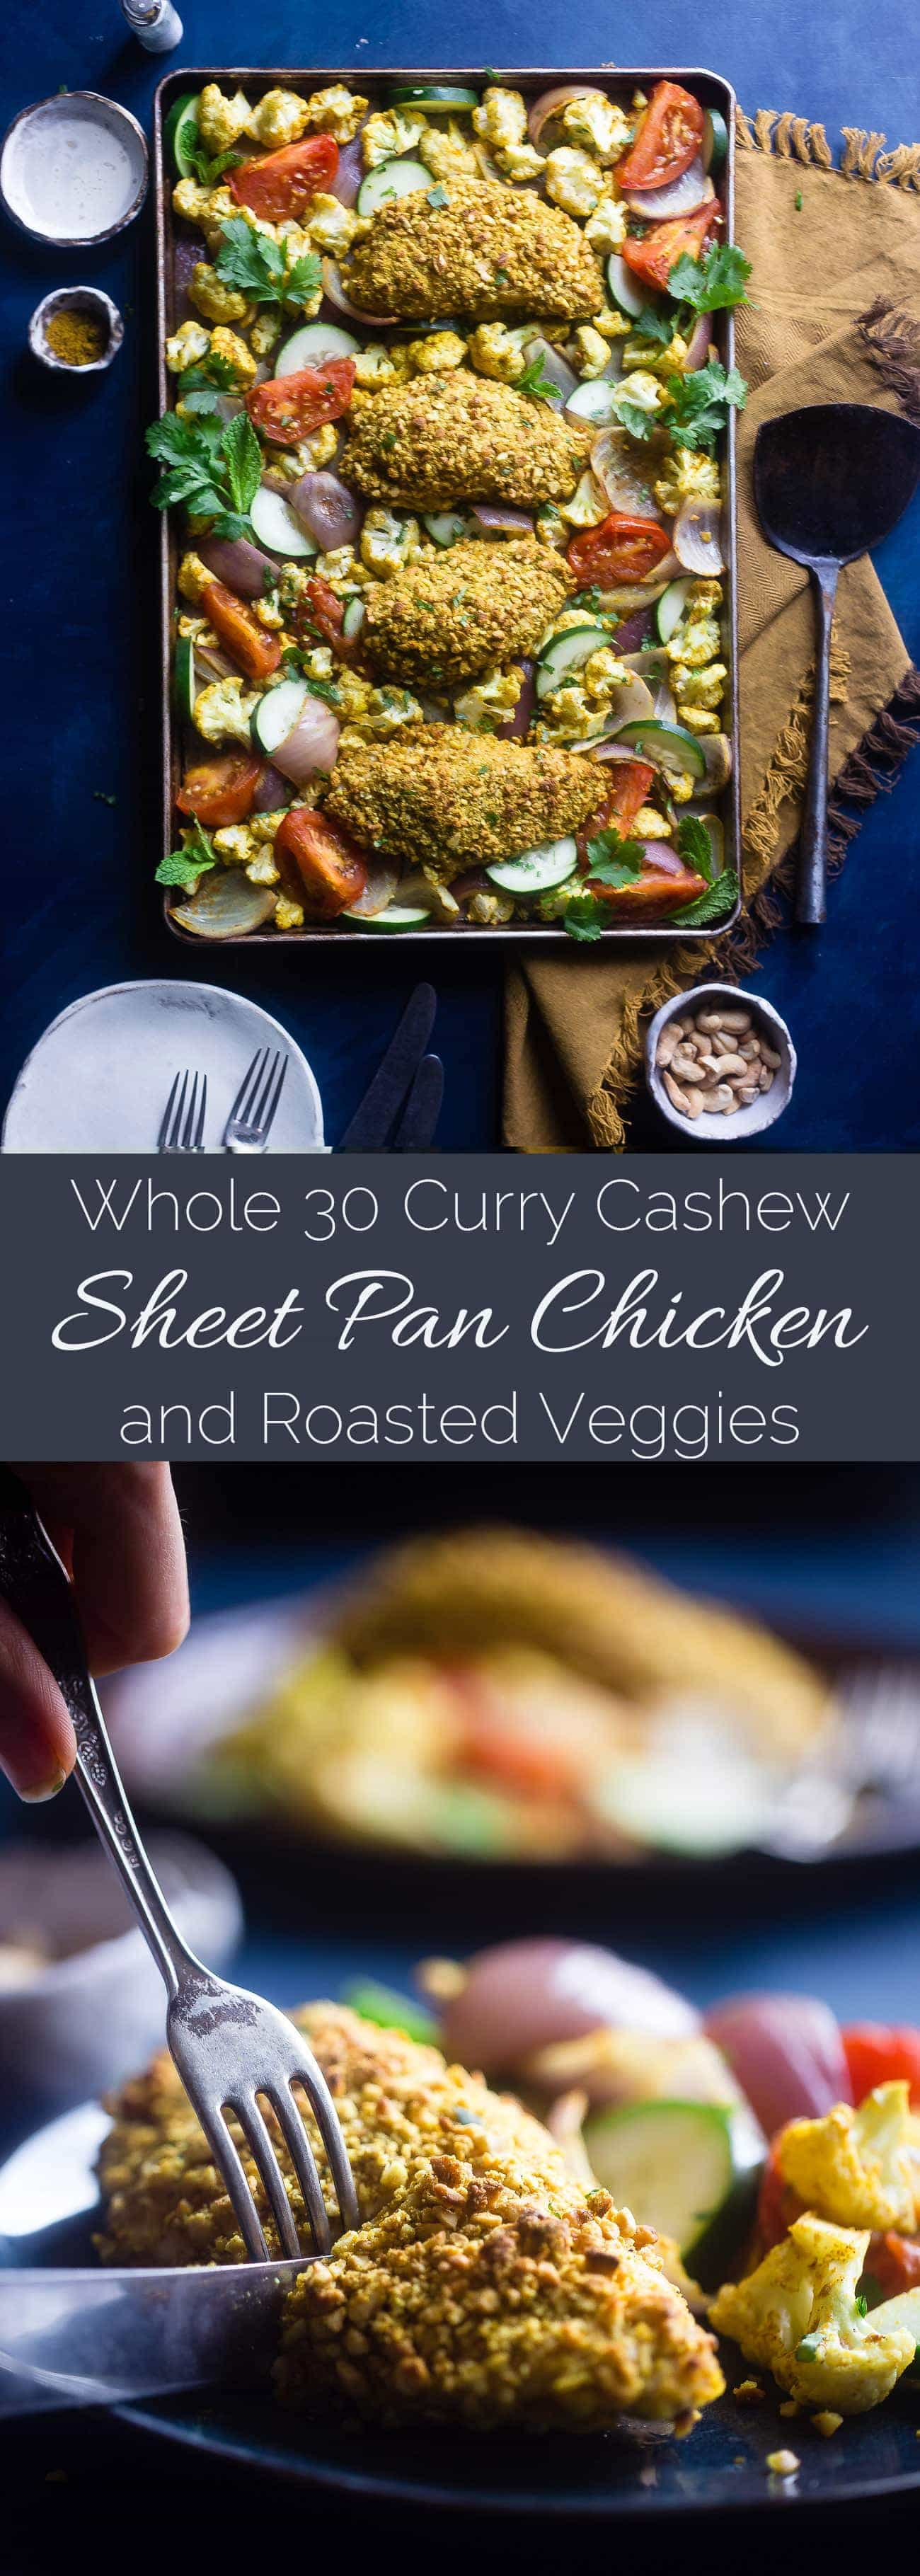 Whole30 Sheet Pan Curry Cashew Chicken - This low carb cashew chicken is flavored with curry, and the whole meal is made on one sheet! It's an easy, healthy weeknight meal the whole will love, for under 400 calories! | Foodfaithfitness.com | @FoodFaithFit